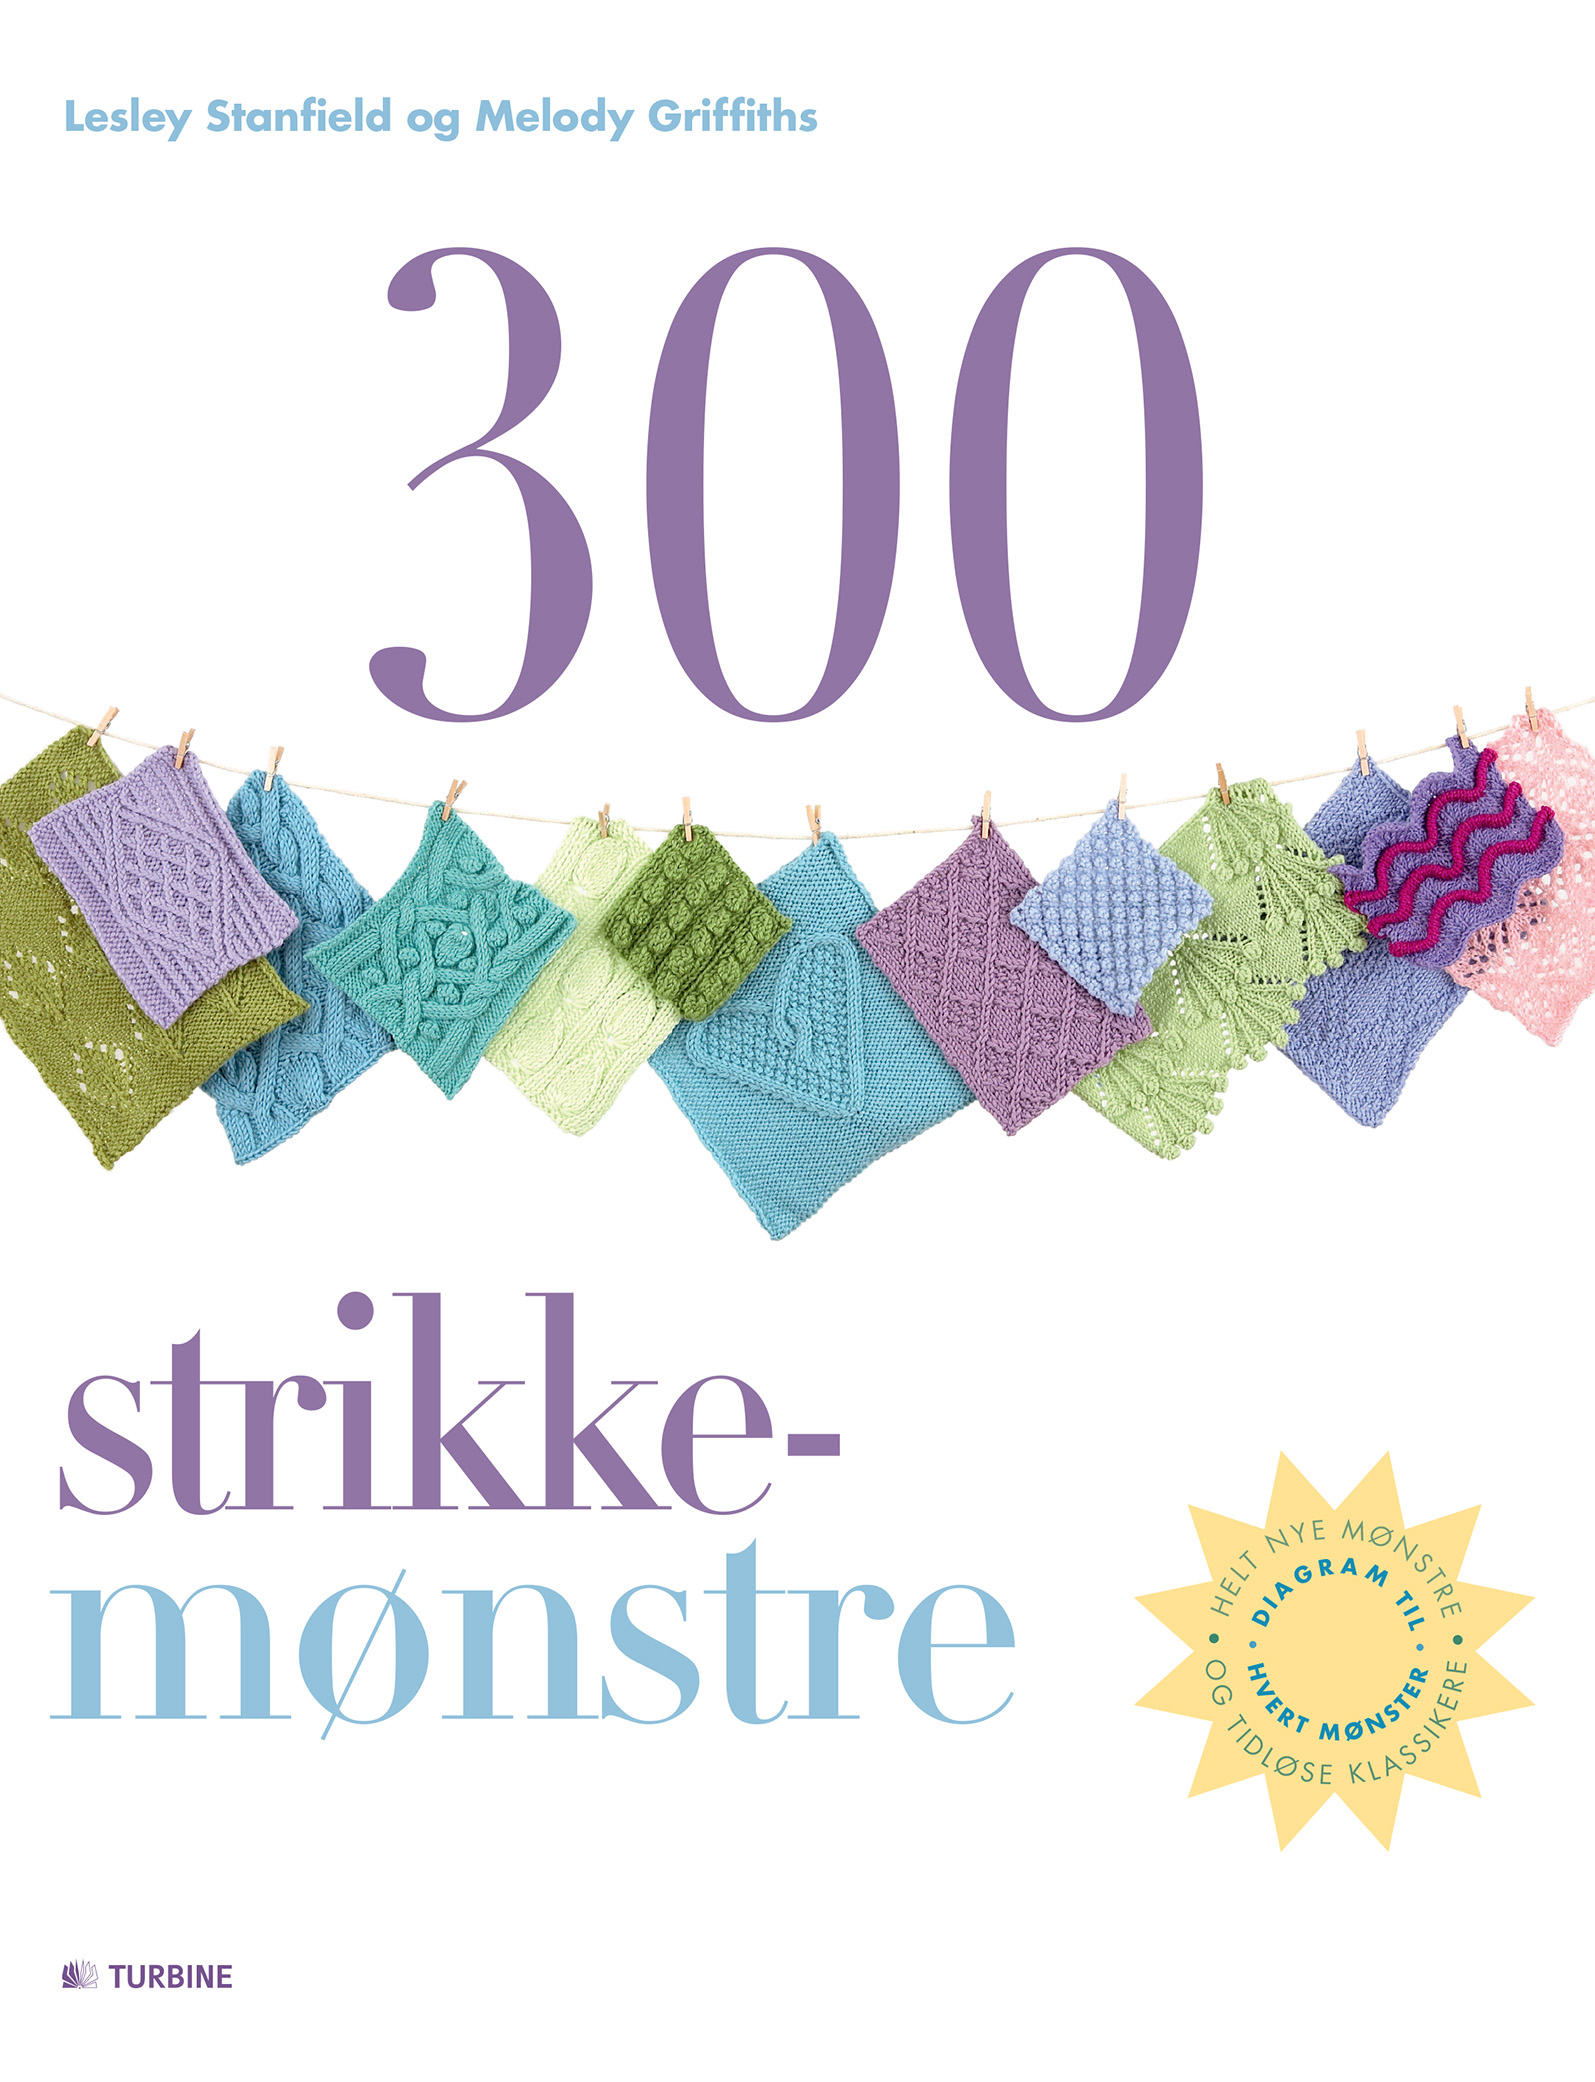 300 strikkemønstre af Lesley Stanfield, Melody Griffiths - 9788771417067